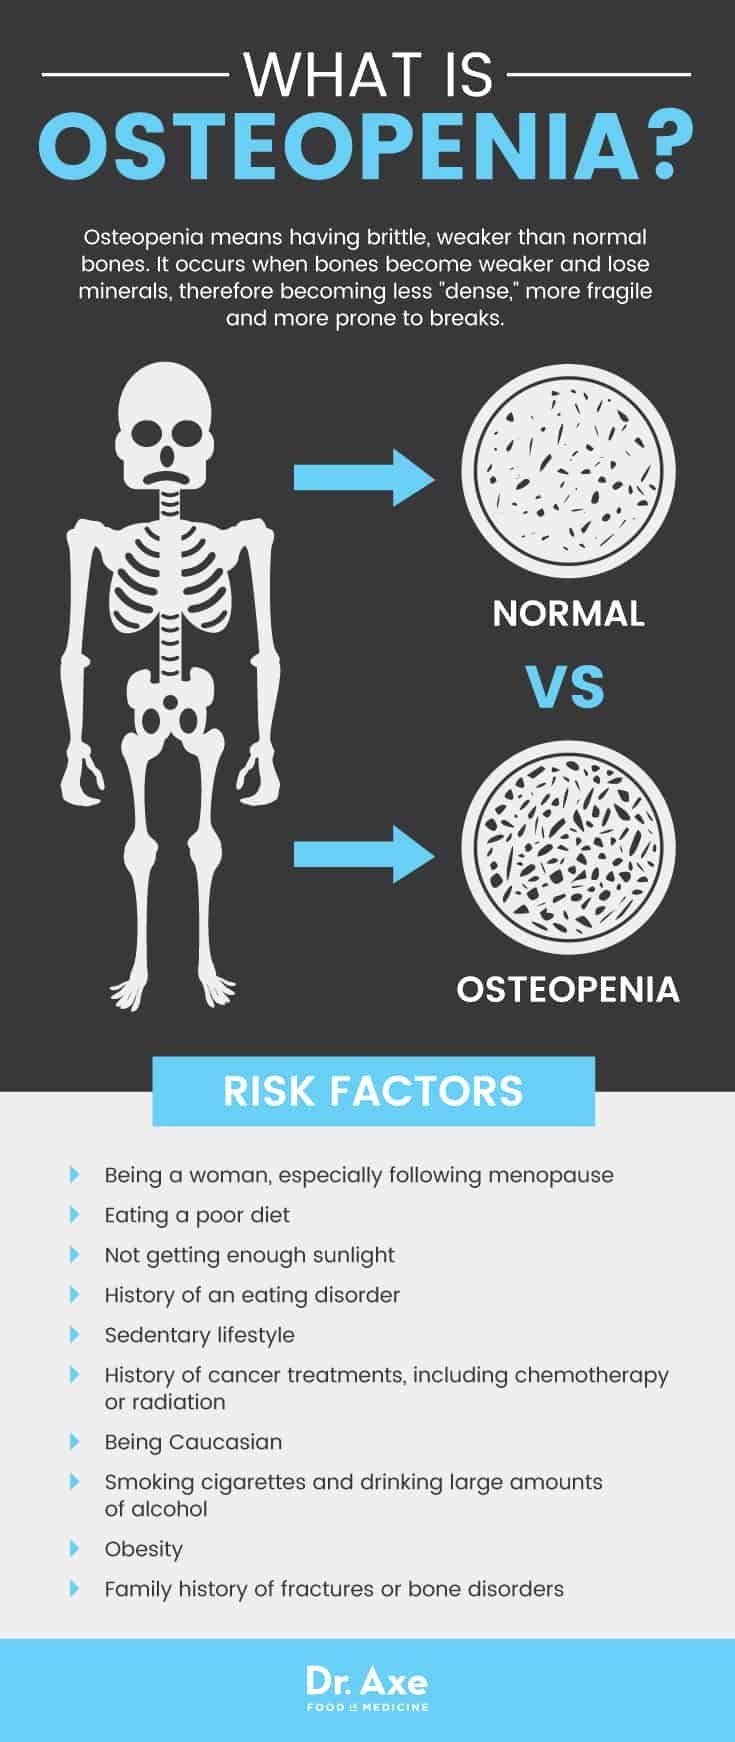 38++ The most significant dietary factor contributing to osteoporosis is info